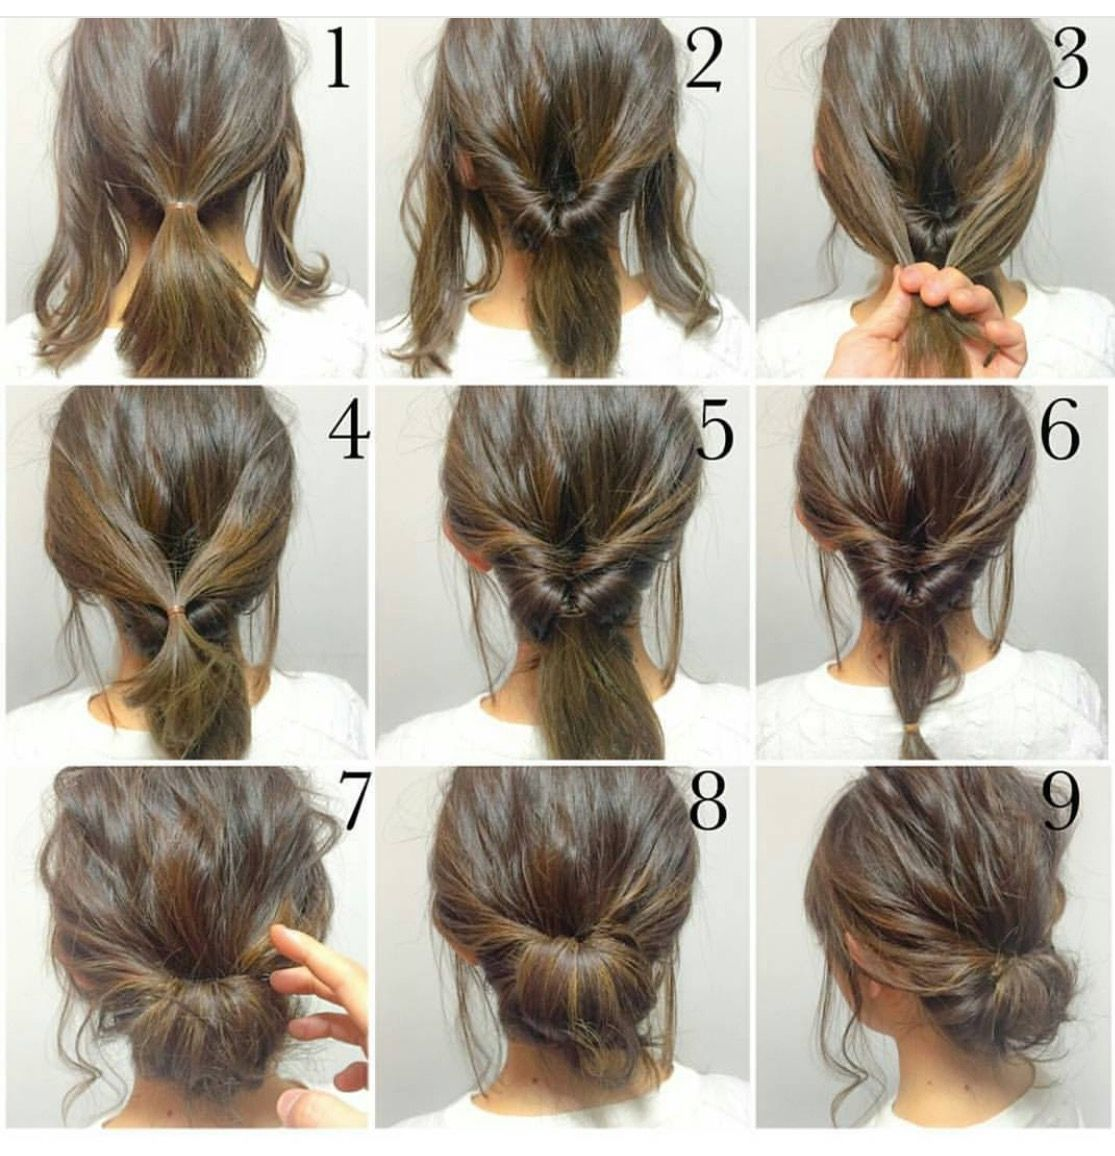 4 Messy Updos For Long Hair Hairz Short Hair Styles